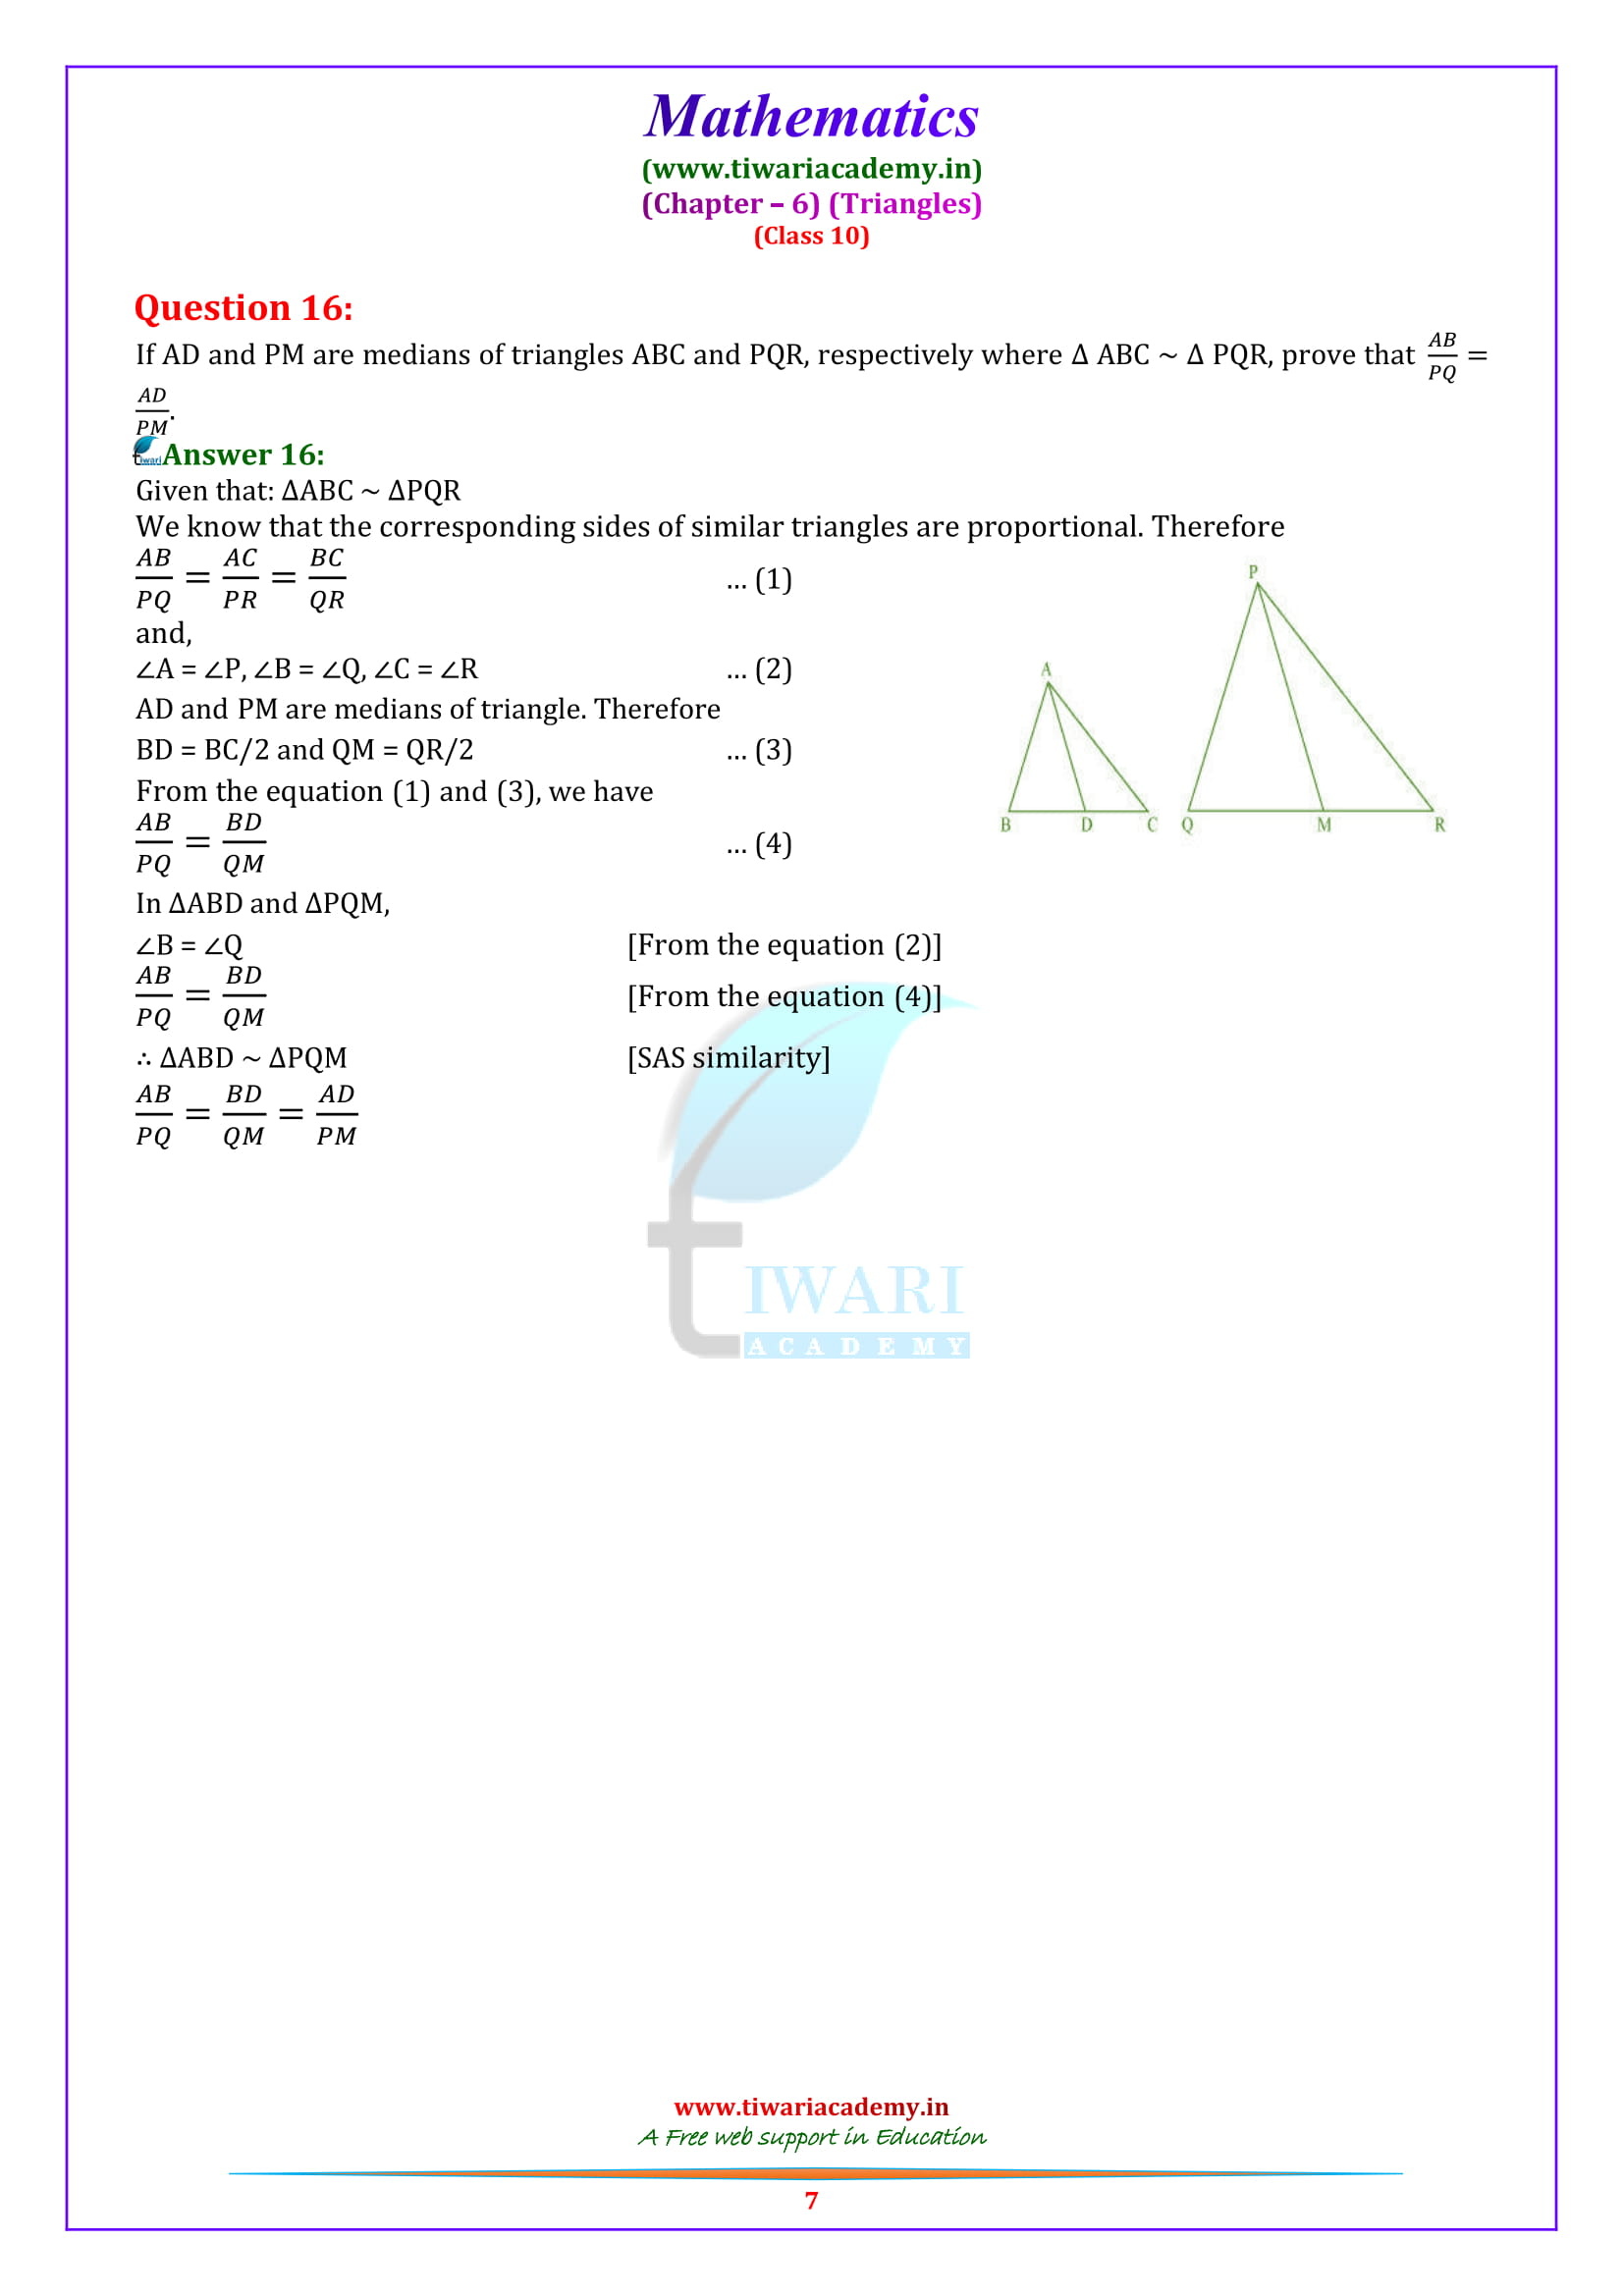 10 Maths Exercise 6.3 Solutions free for all